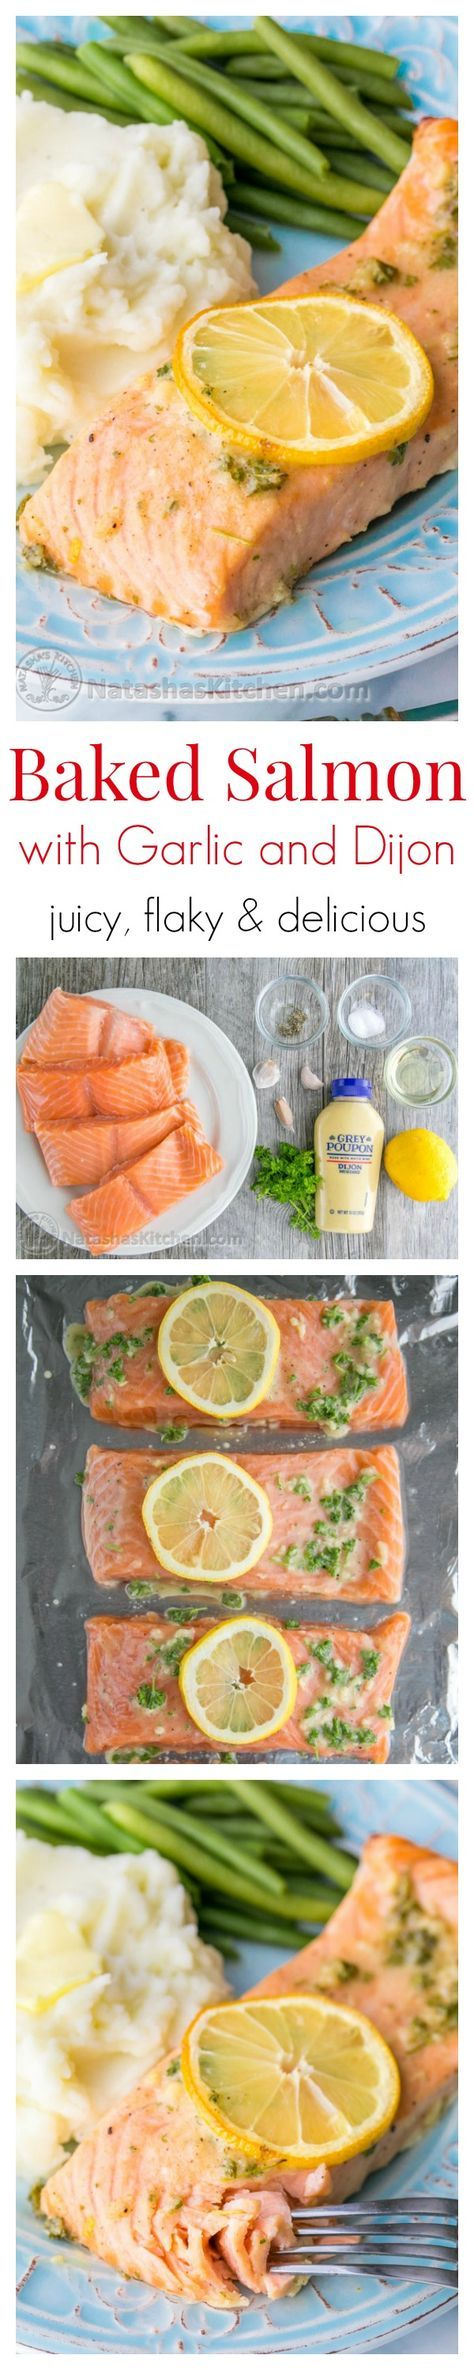 Our Favorite Baked Salmon Recipe - juicy, flaky and super delicious. A 5-Star recipe!!   http://natashaskitchen.com